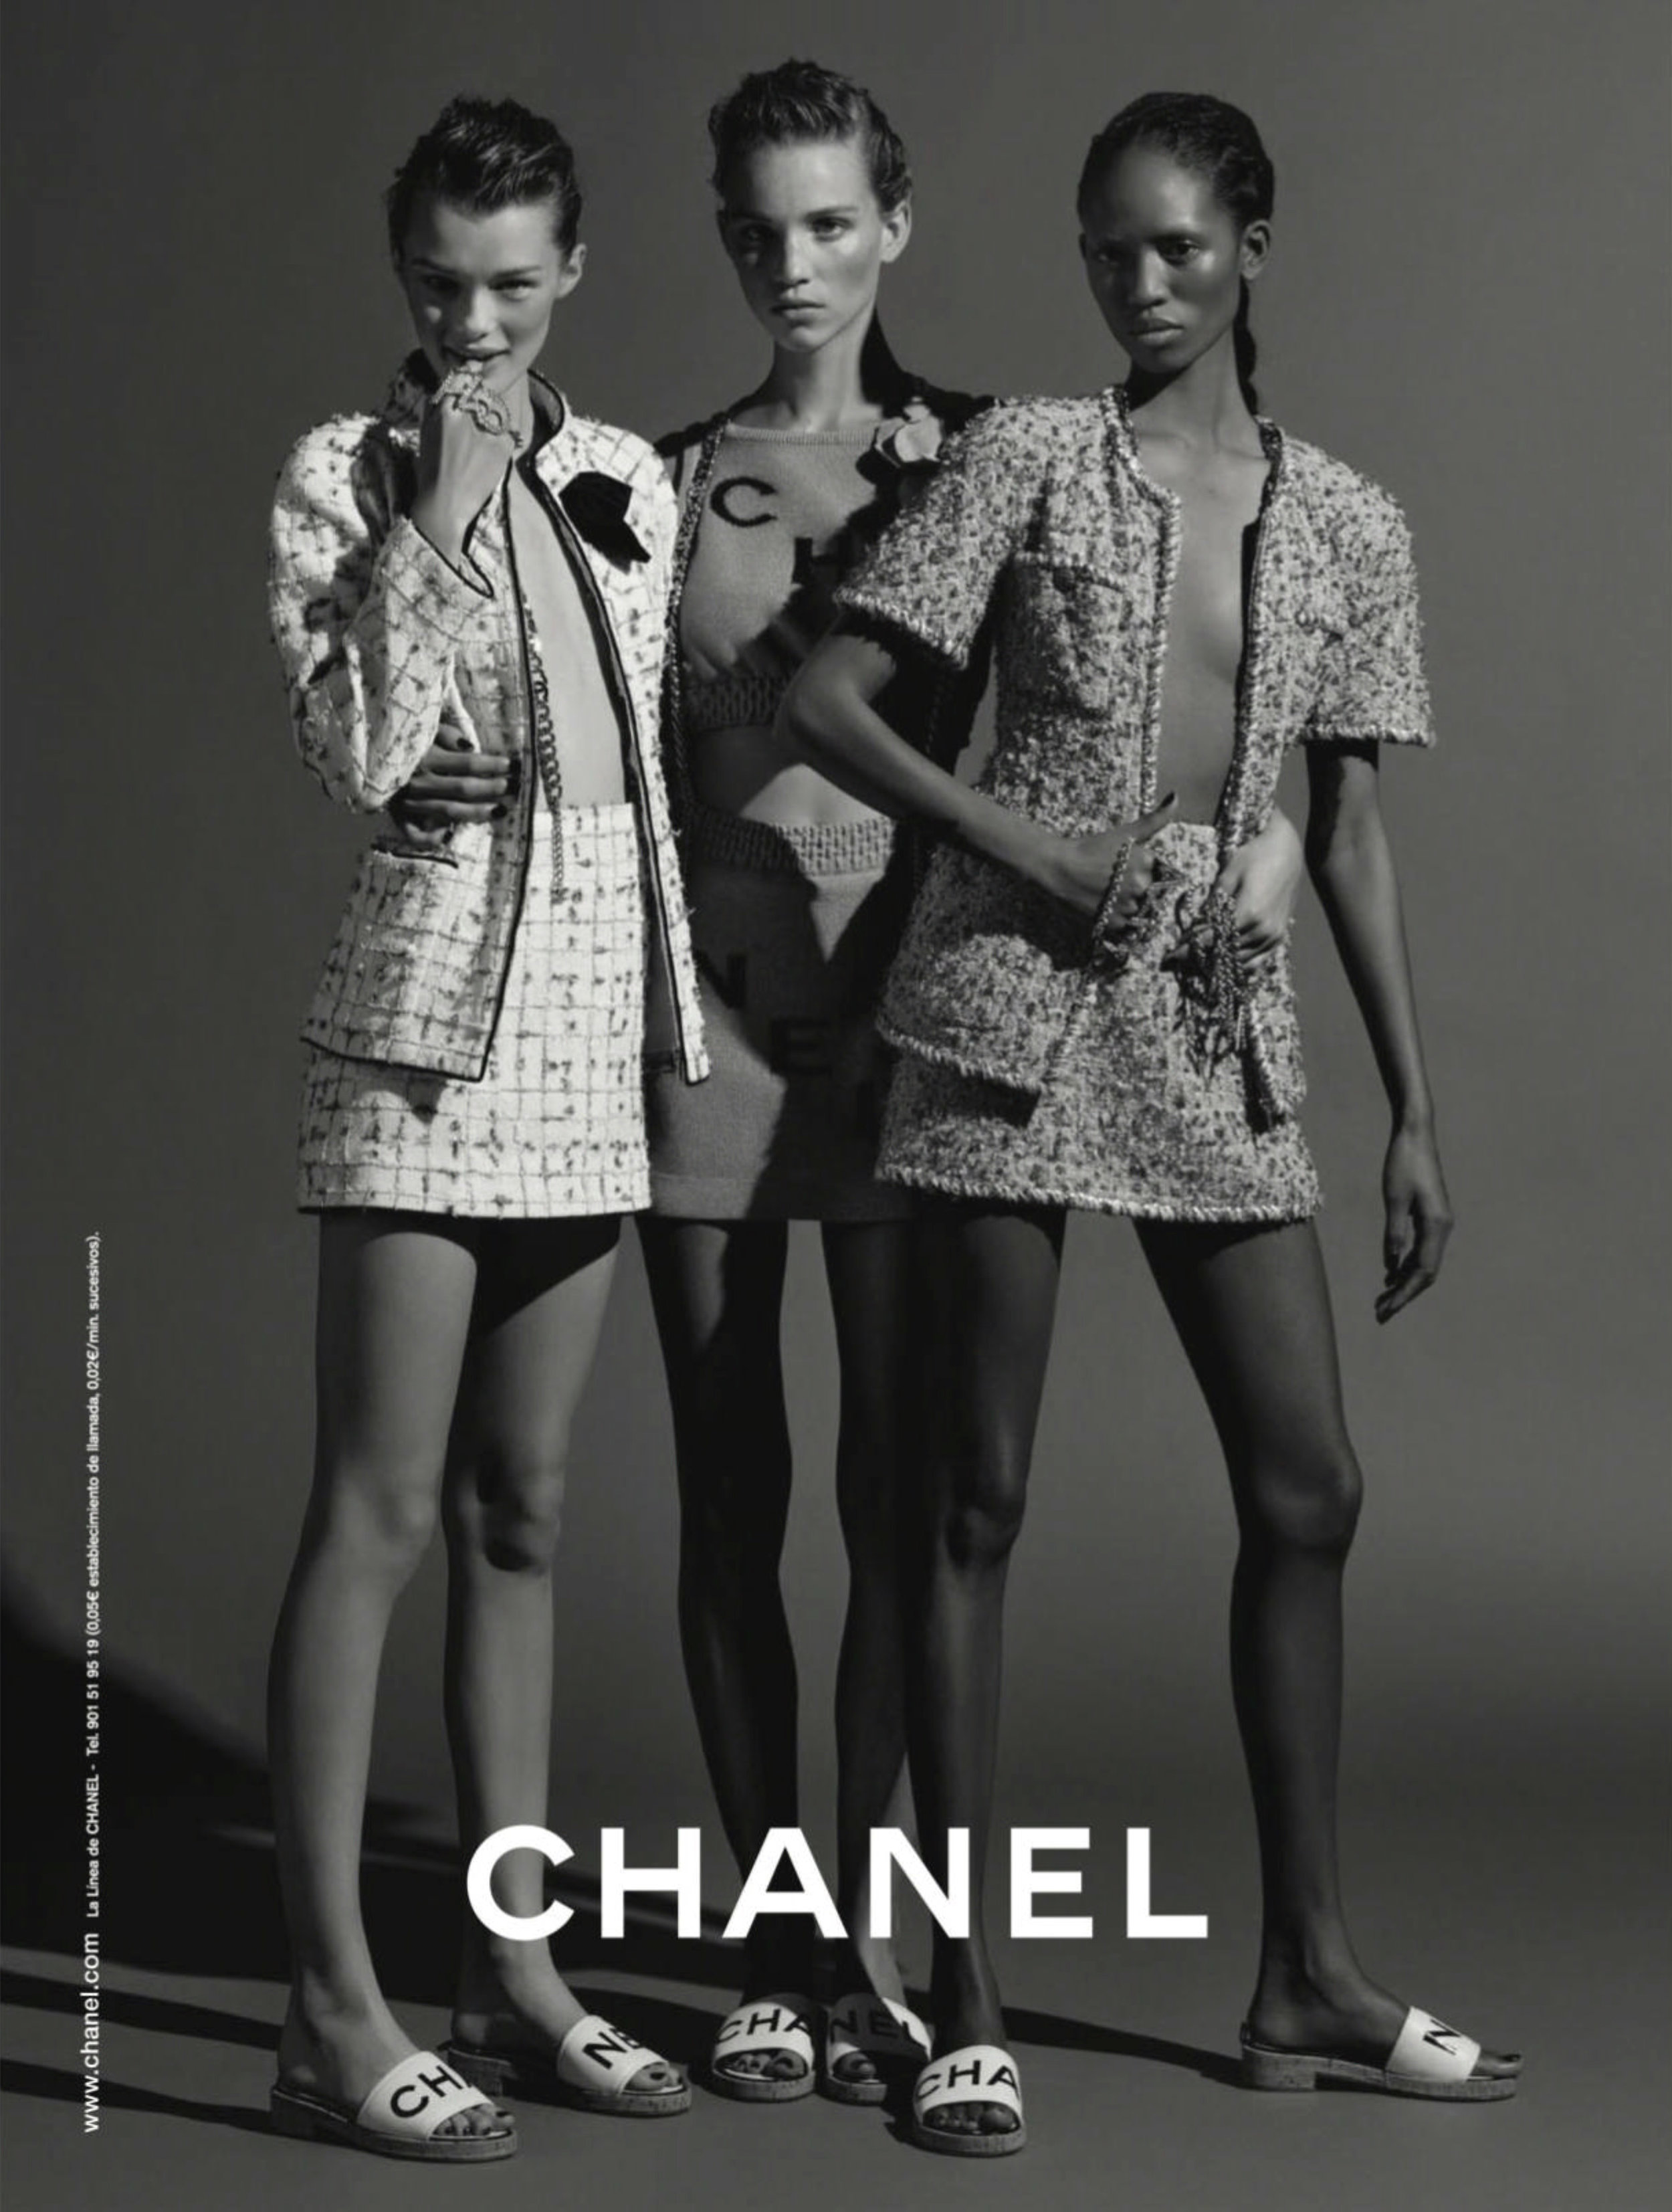 chanel_spring_2019_campaign14.jpg